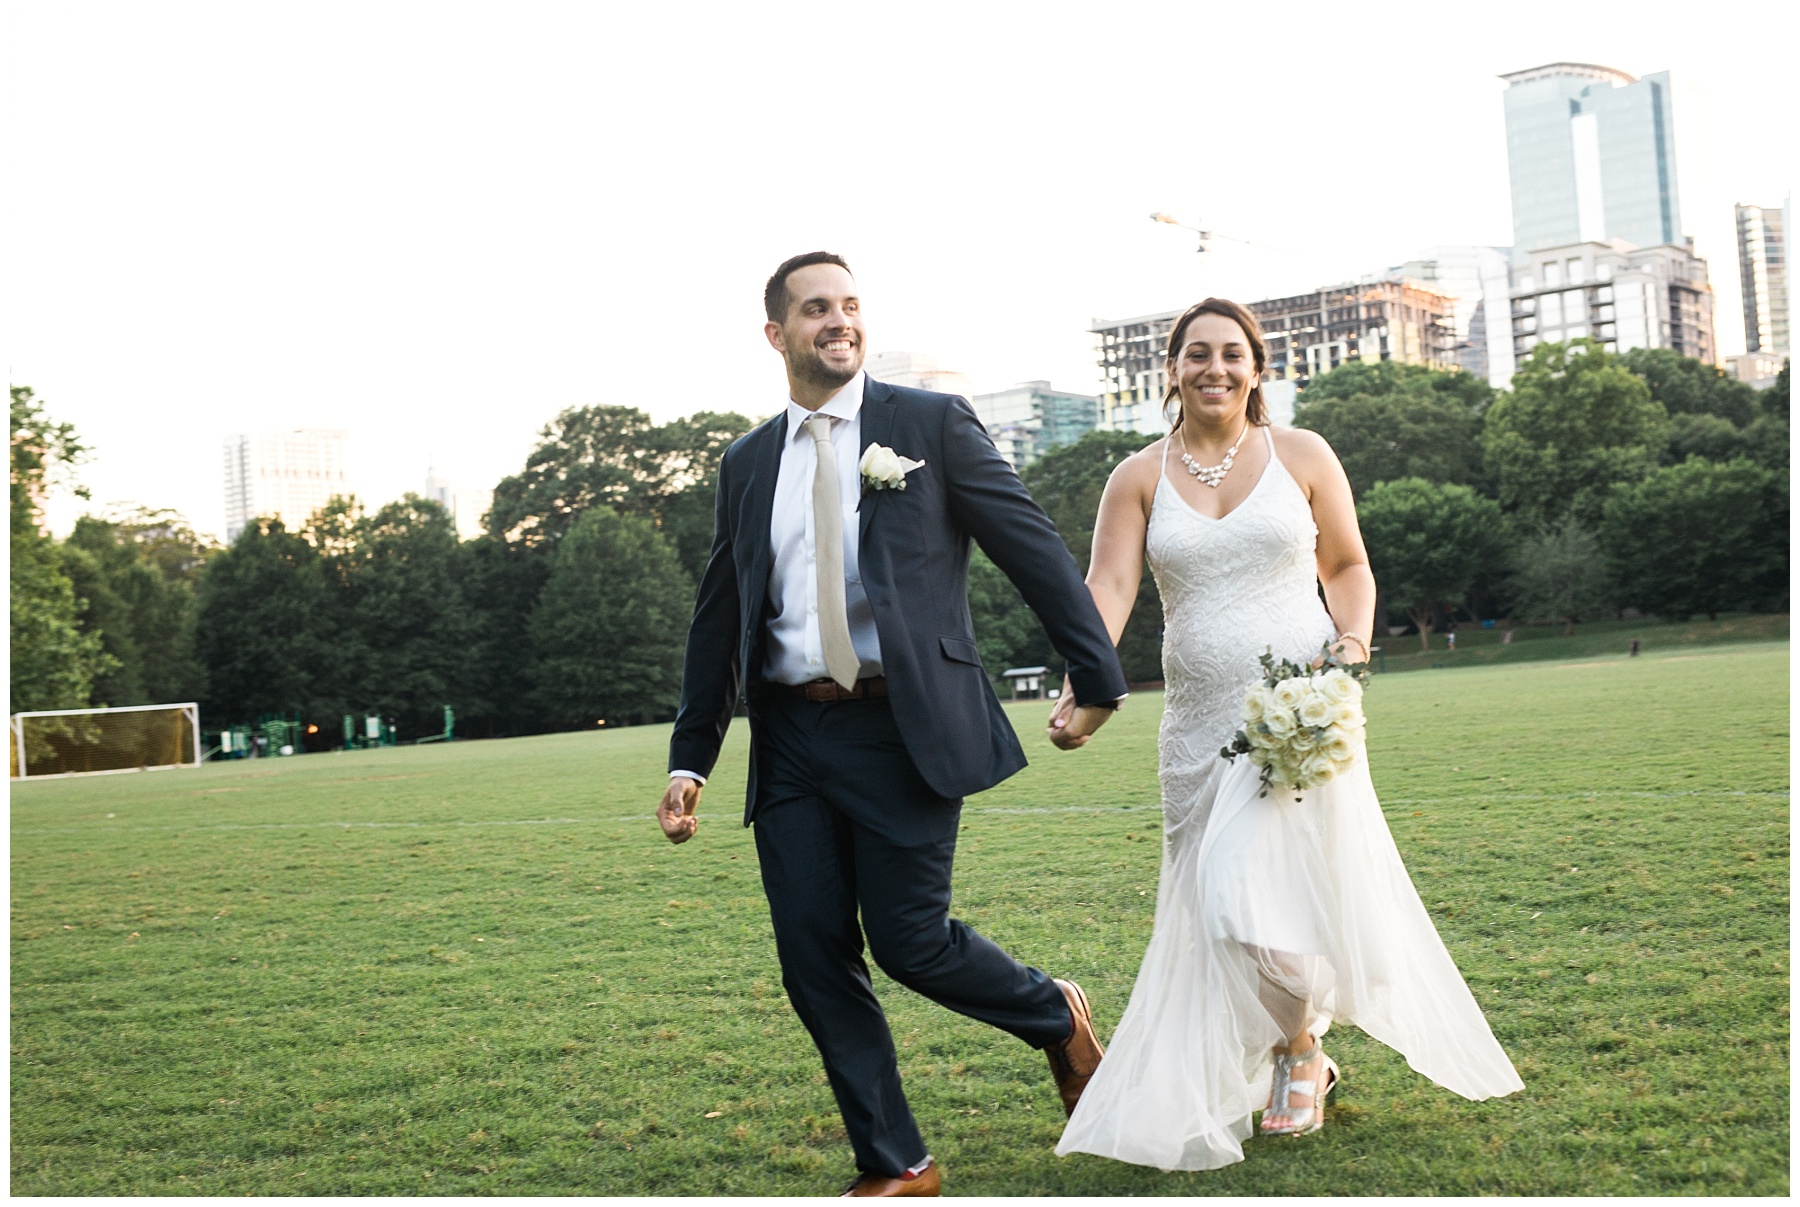 couple skyline run skip piedmont park bride groom elope elopement atlanta